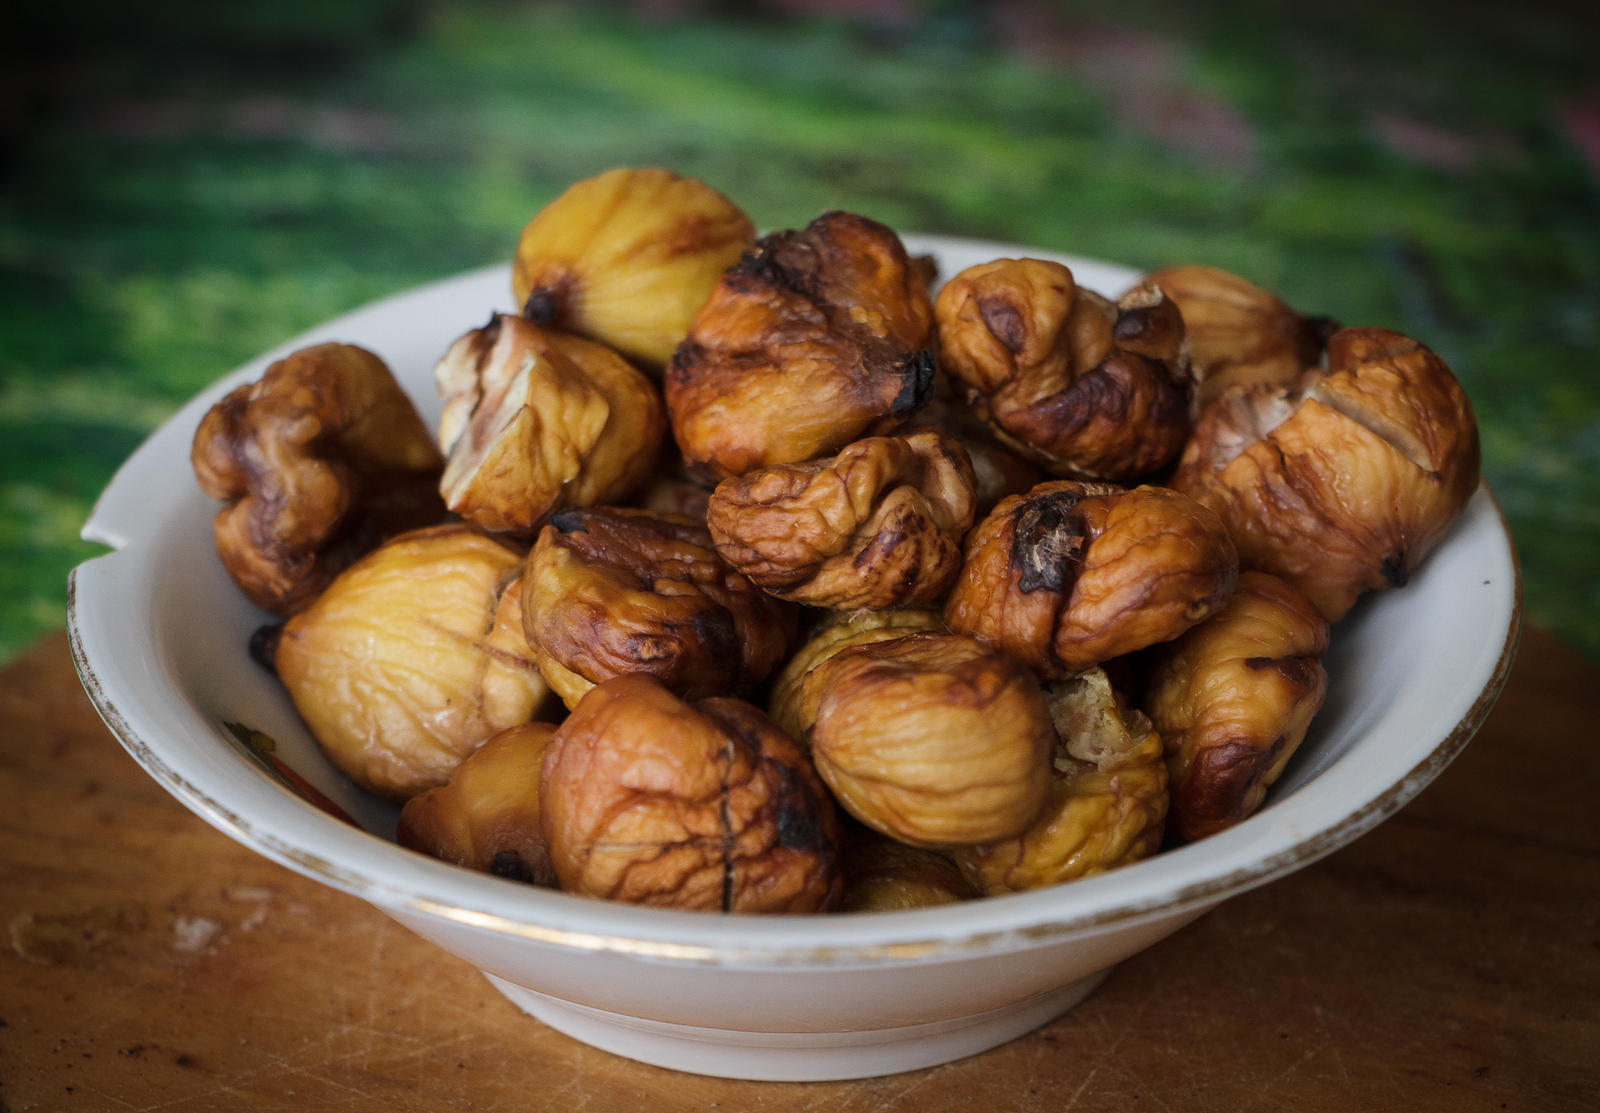 Roasted Chestnuts by sztewe